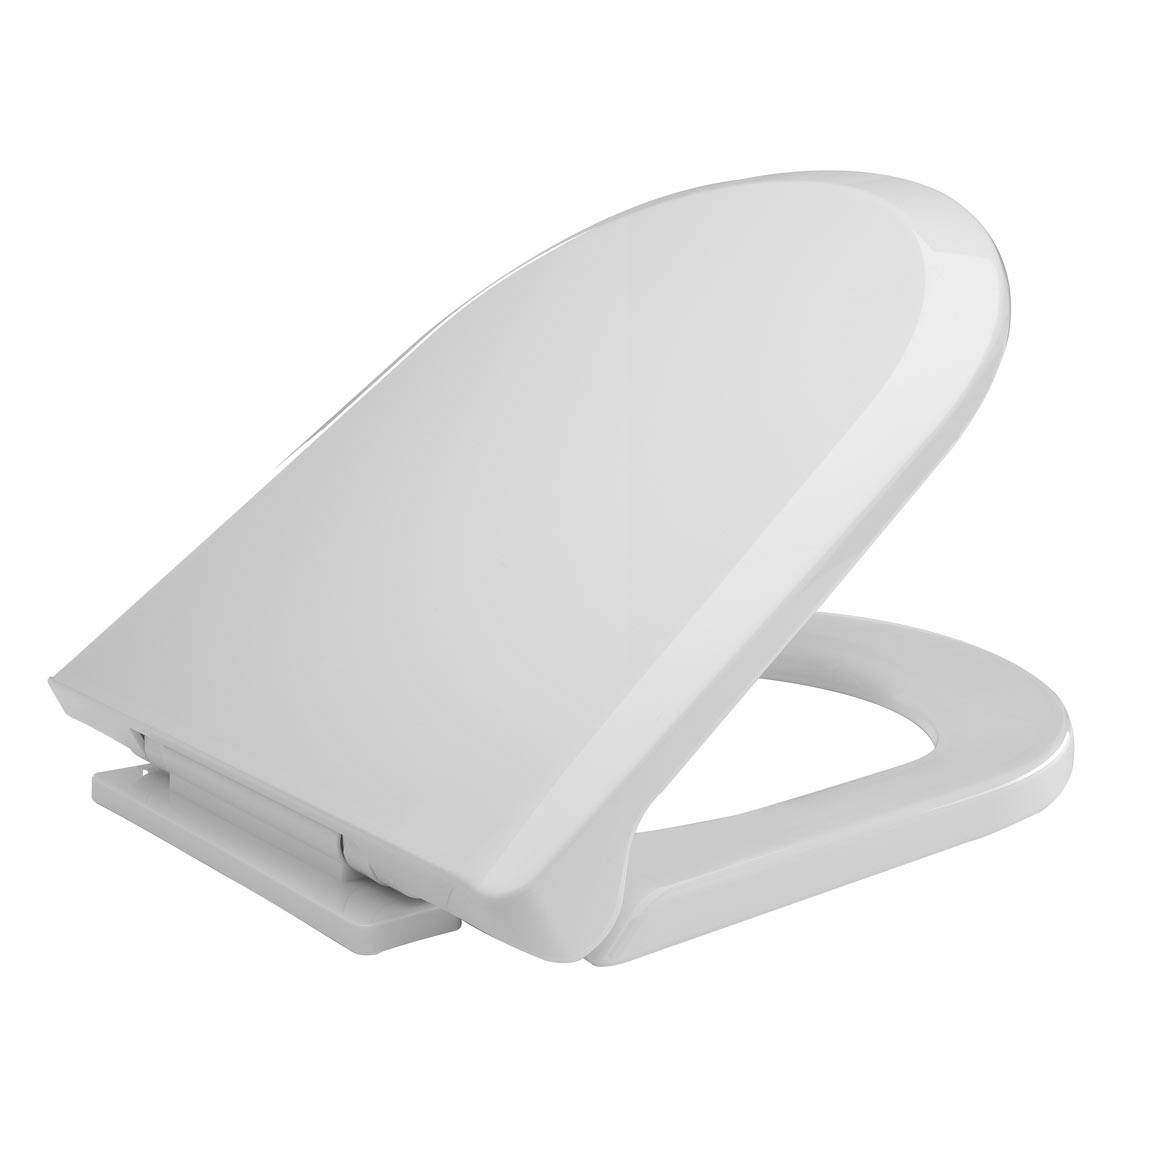 Image of Standard 104 Thermoplastic Soft Close Toilet Seat